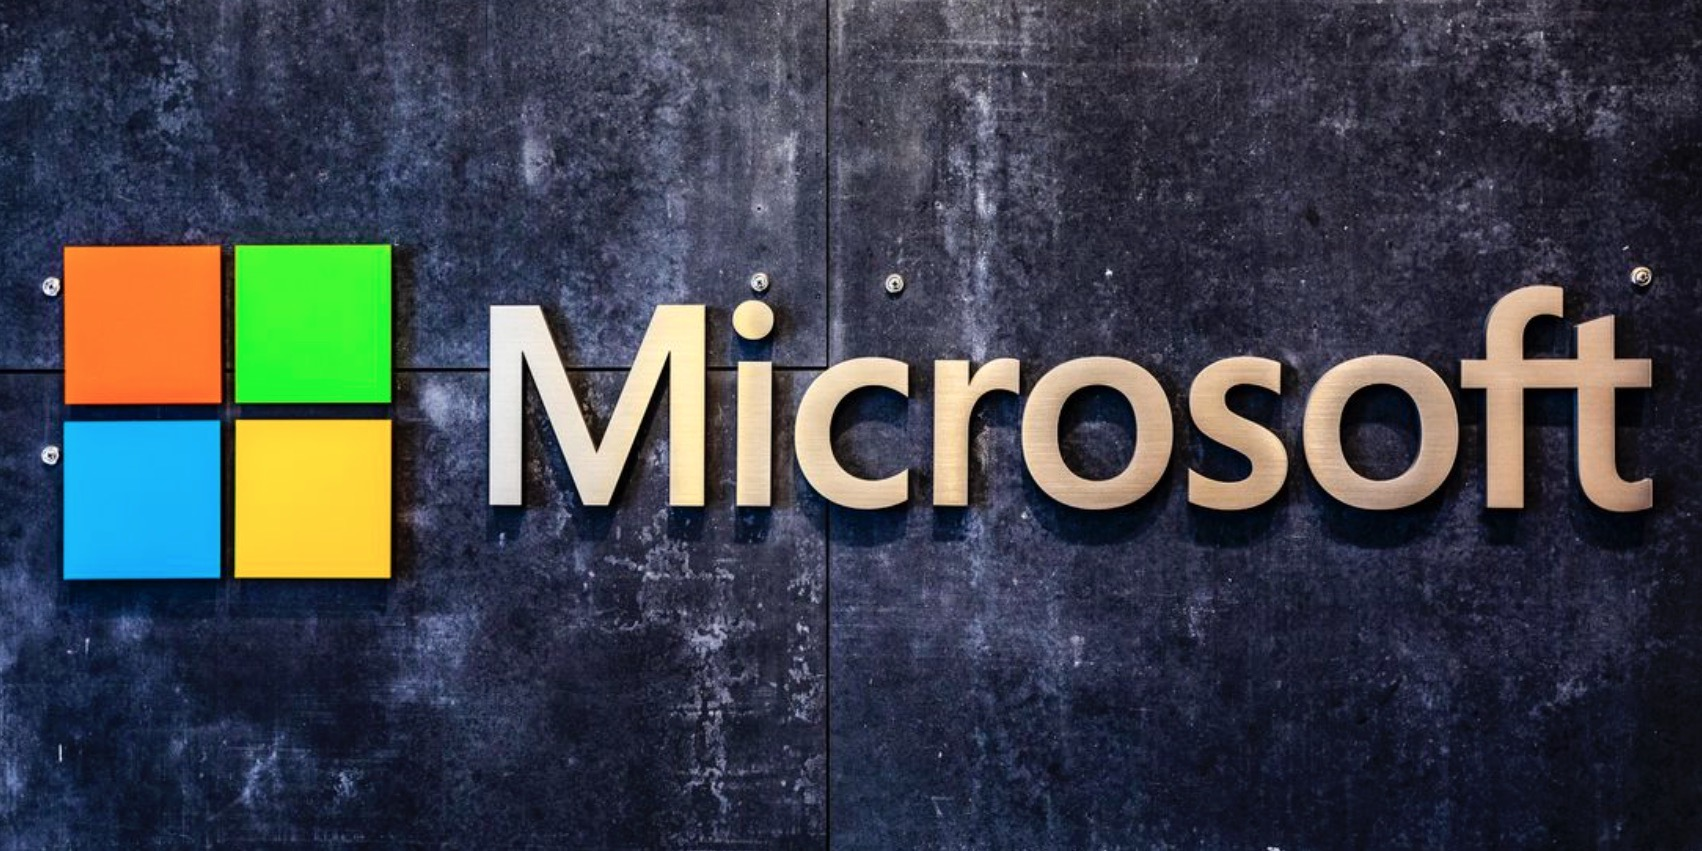 Microsoft Teams heading for consumers, Office 365 plans rebranded as 'Microsoft 365' - 9to5Mac